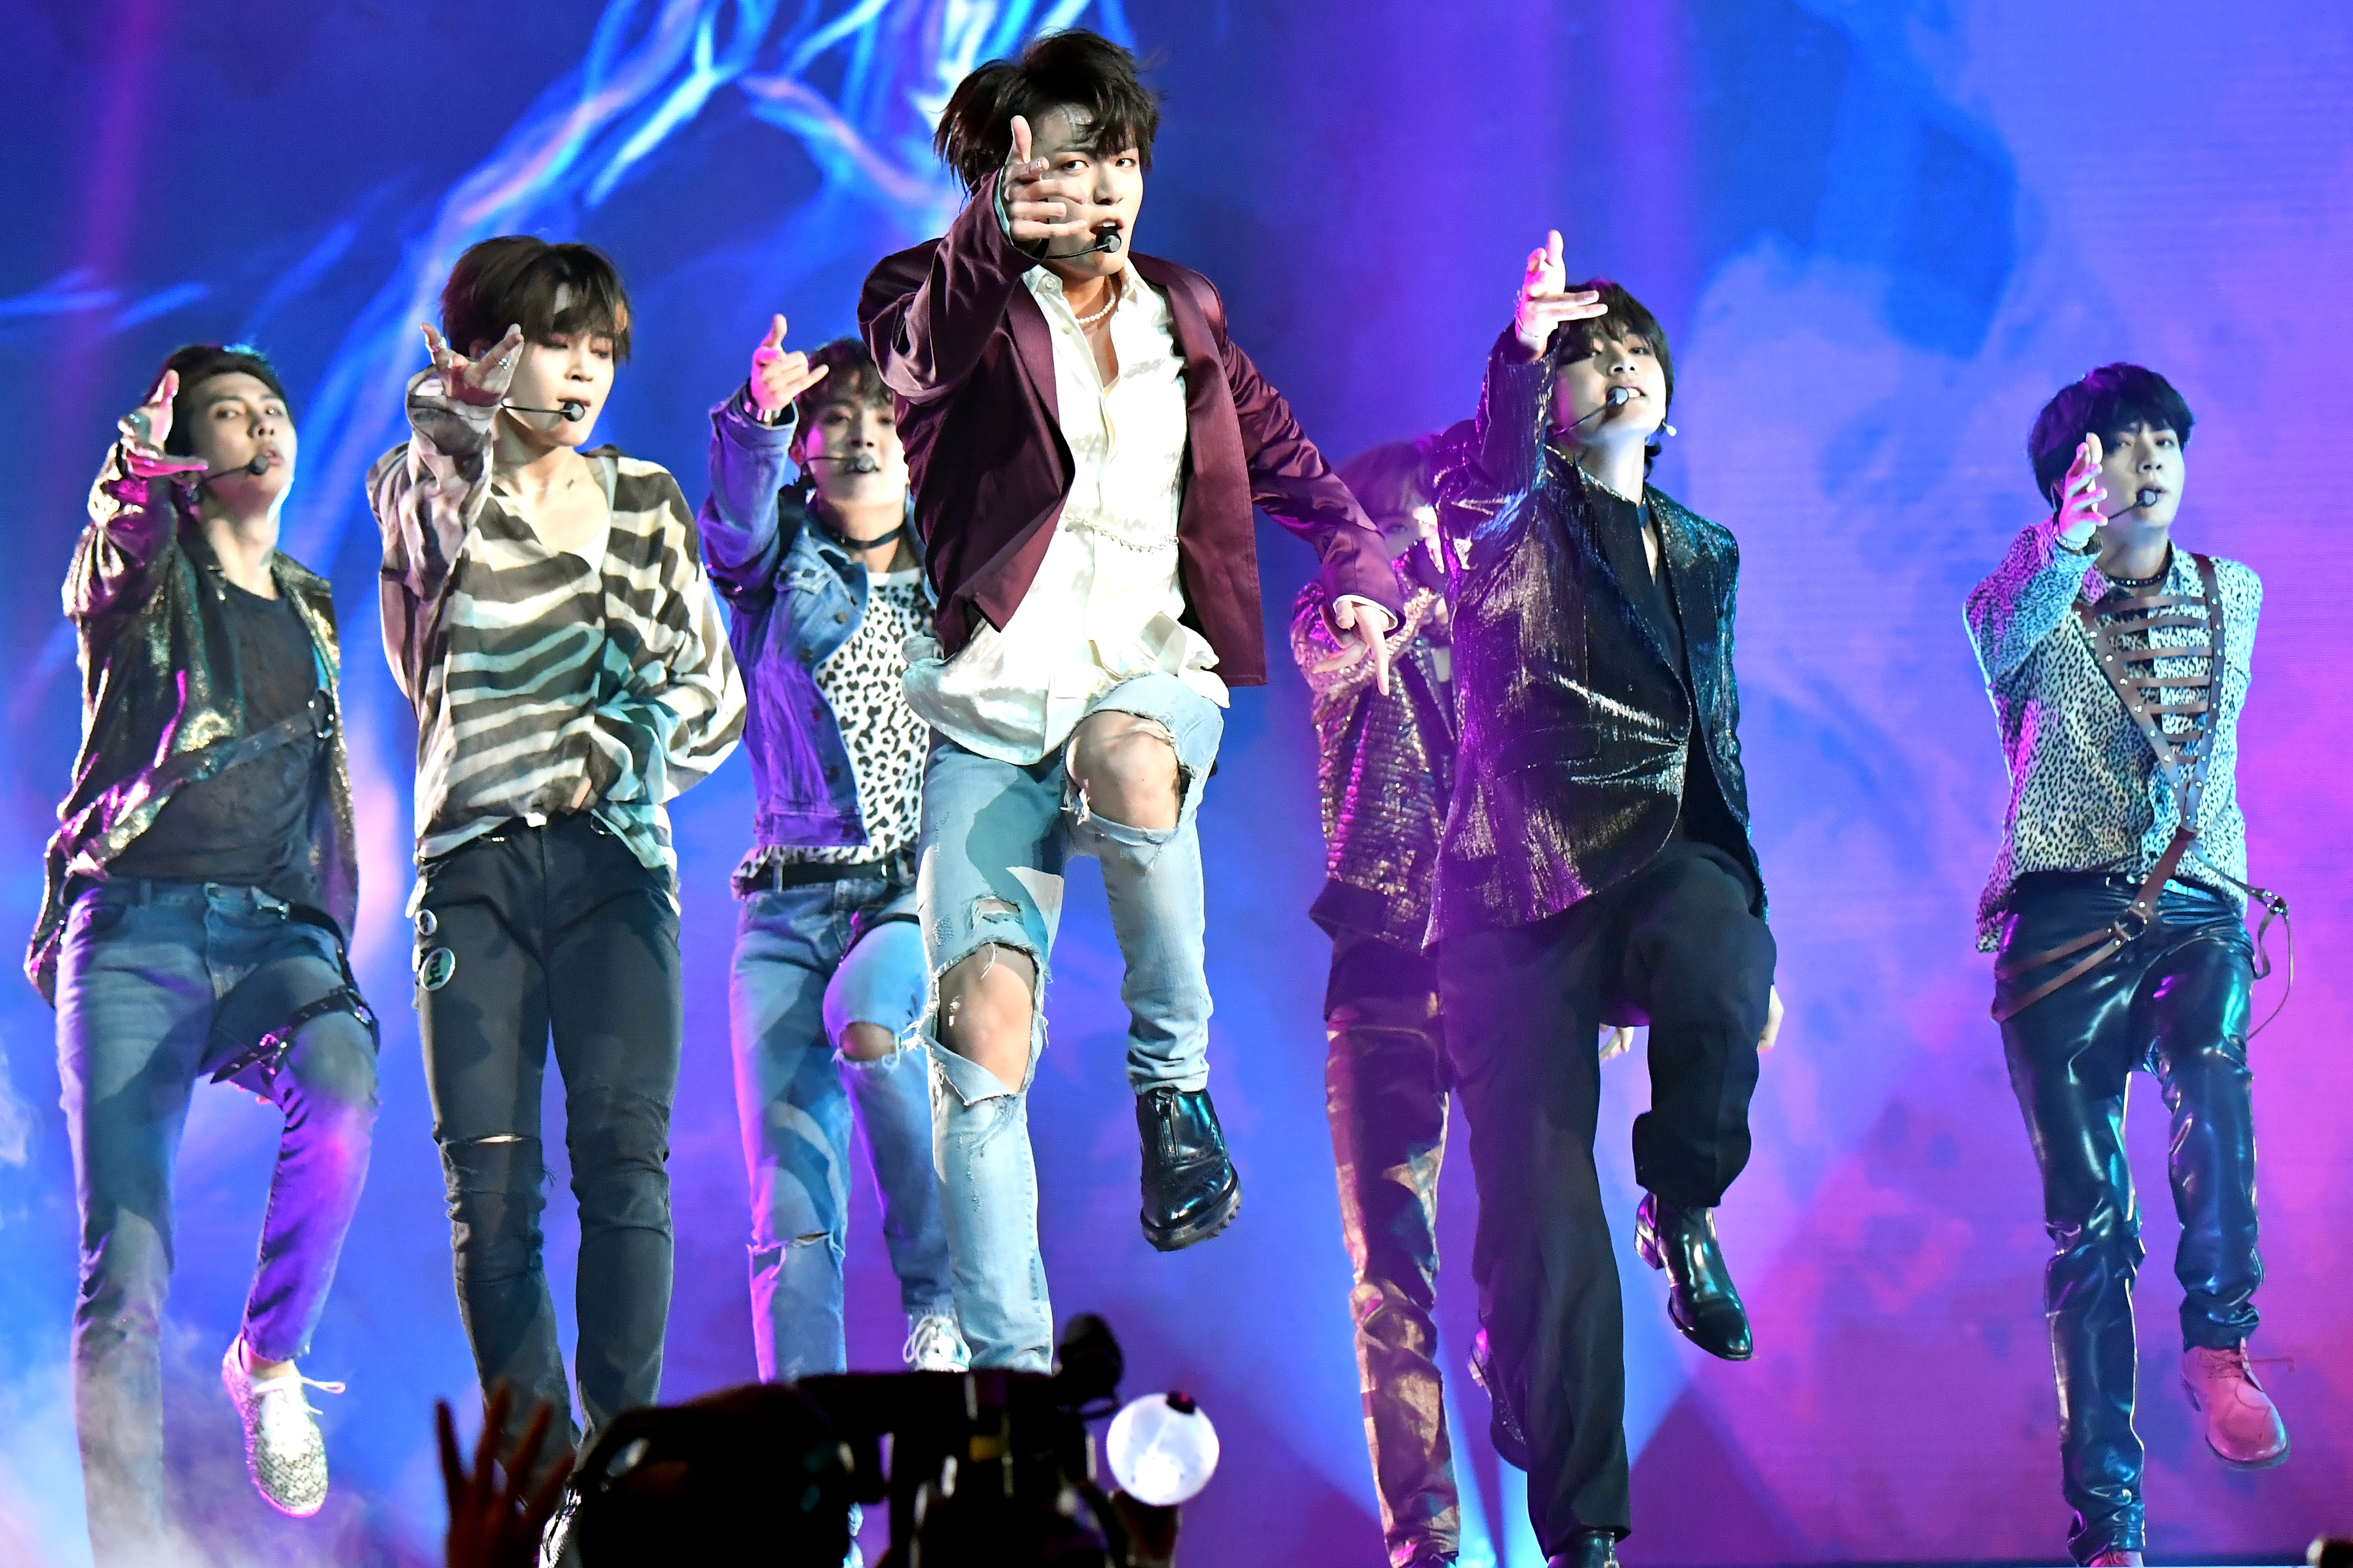 Nicki Minaj Features On A New Song From K Pop Superstars Bts Time